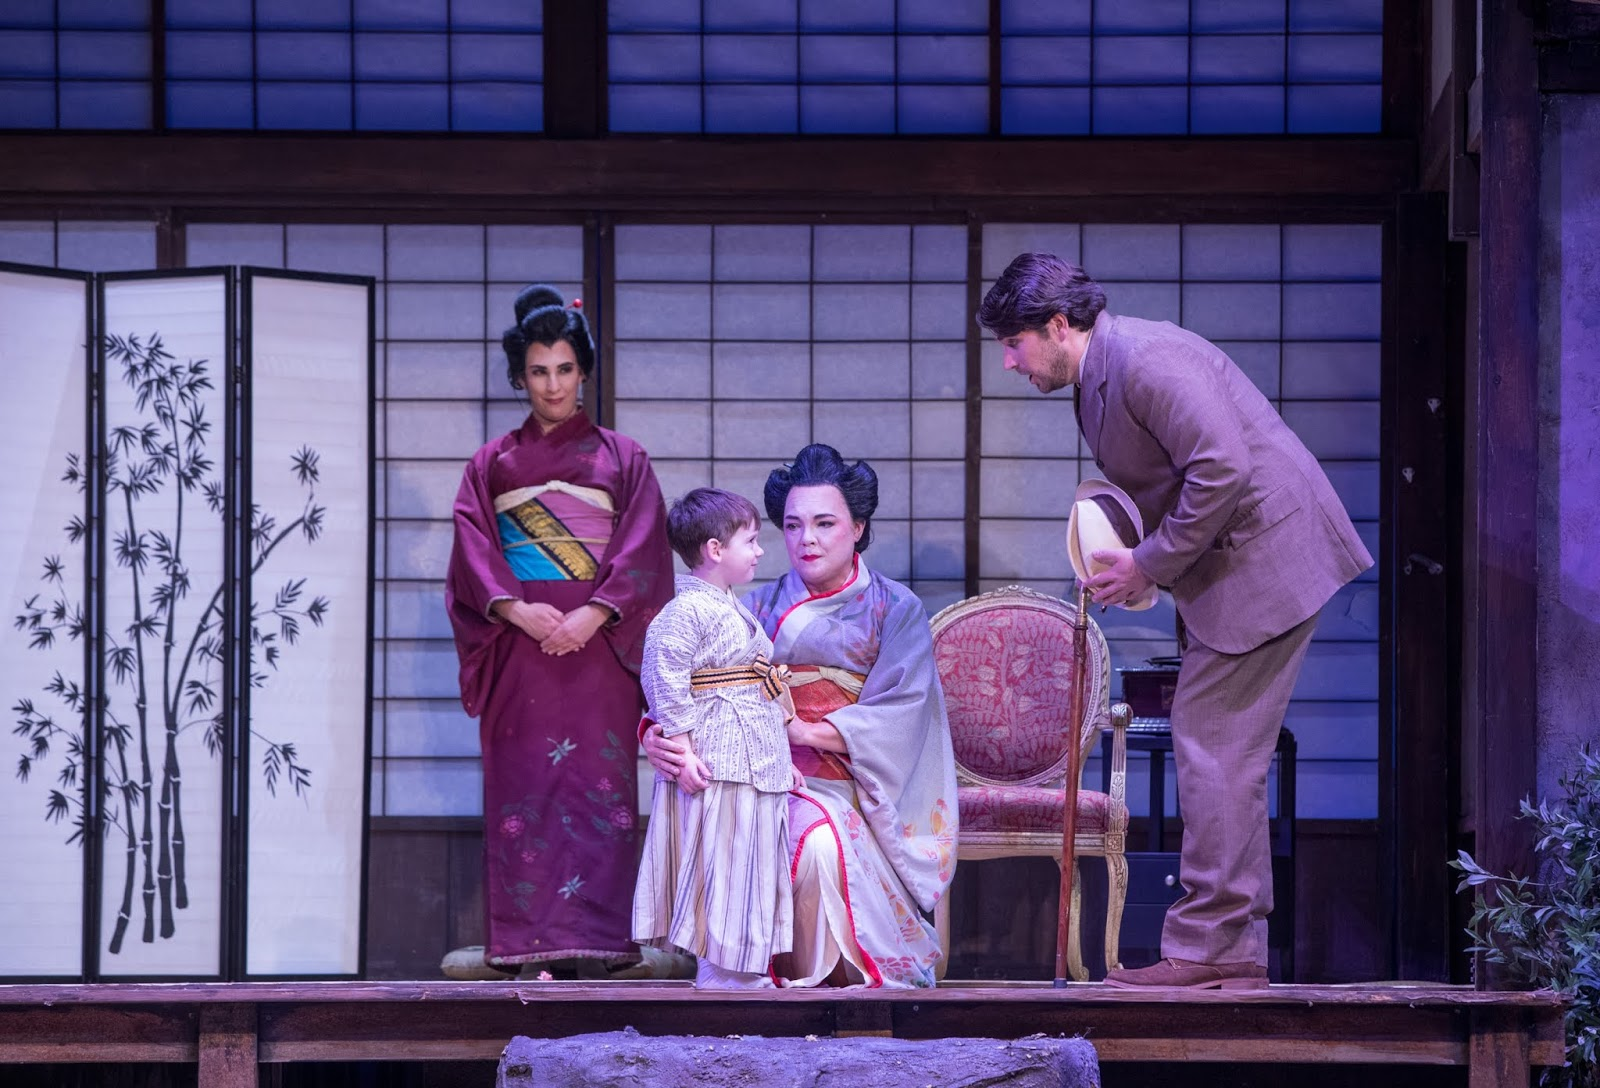 IN REVIEW: (from left to right) mezzo-soprano STEPHANIE FOLEY DAVIS as Suzuki, SAMUEL PERSHALL as Dolore, soprano JILL GARDNER as Cio-Cio-San, and baritone DAVID PERSHALL as Sharpless in Greensboro Opera's production of Giacomo Puccini's MADAMA BUTTERFLY, 9 November 2018 [Photo by Vanderveen Photography, © by Greensboro Opera]